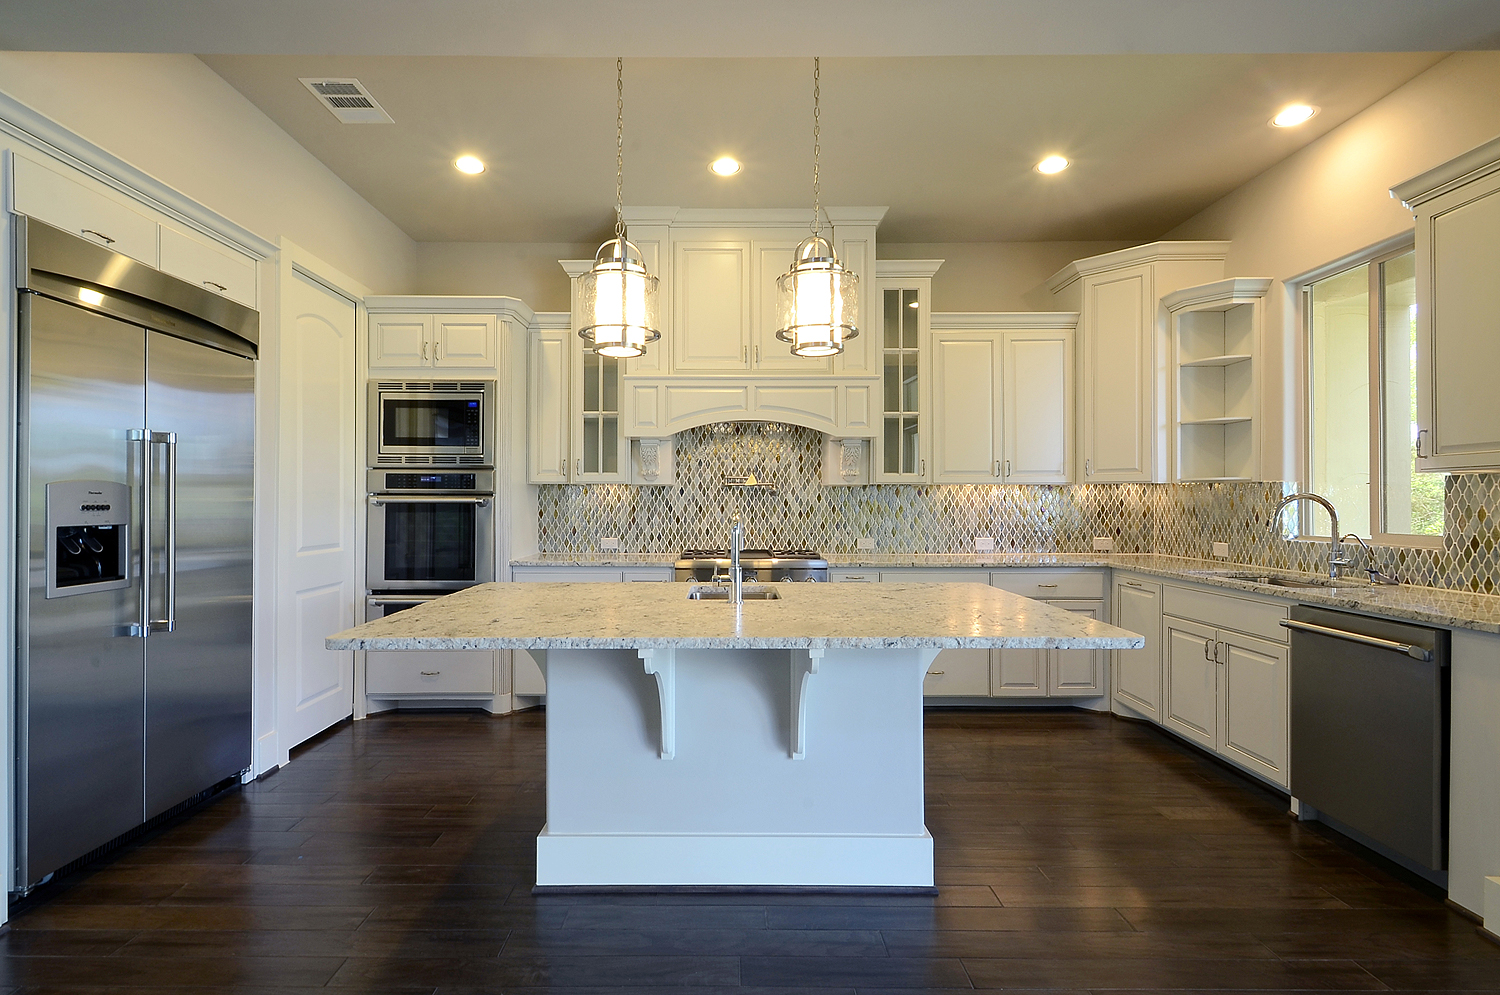 Burrows Cabinets white kitchen with glass doors, open shelves and bumped up cabinets